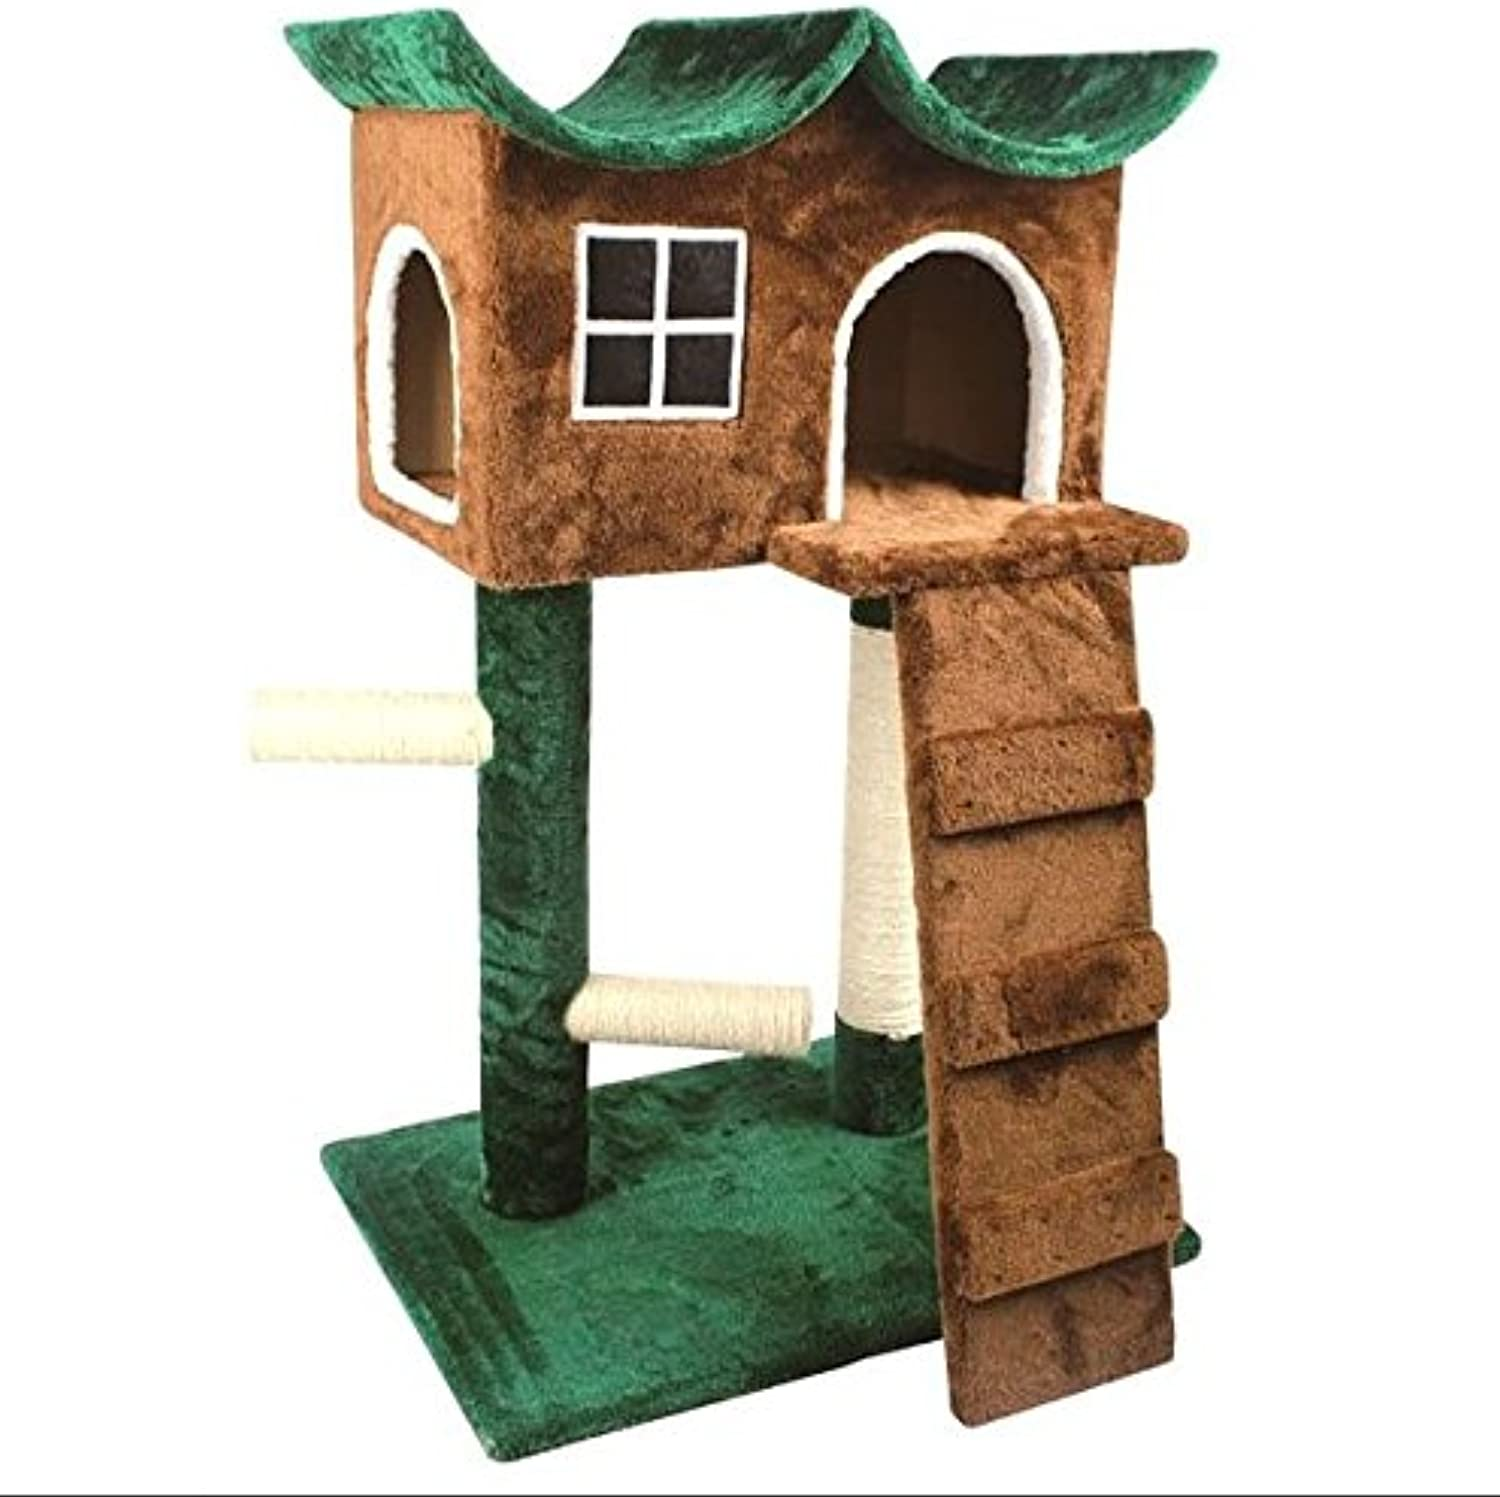 Amazing Cat Condo Tower  Multiple Resting Place For Your Feline Friend  Tree House Design  Made From Flakeboard, Sisal, And Plush